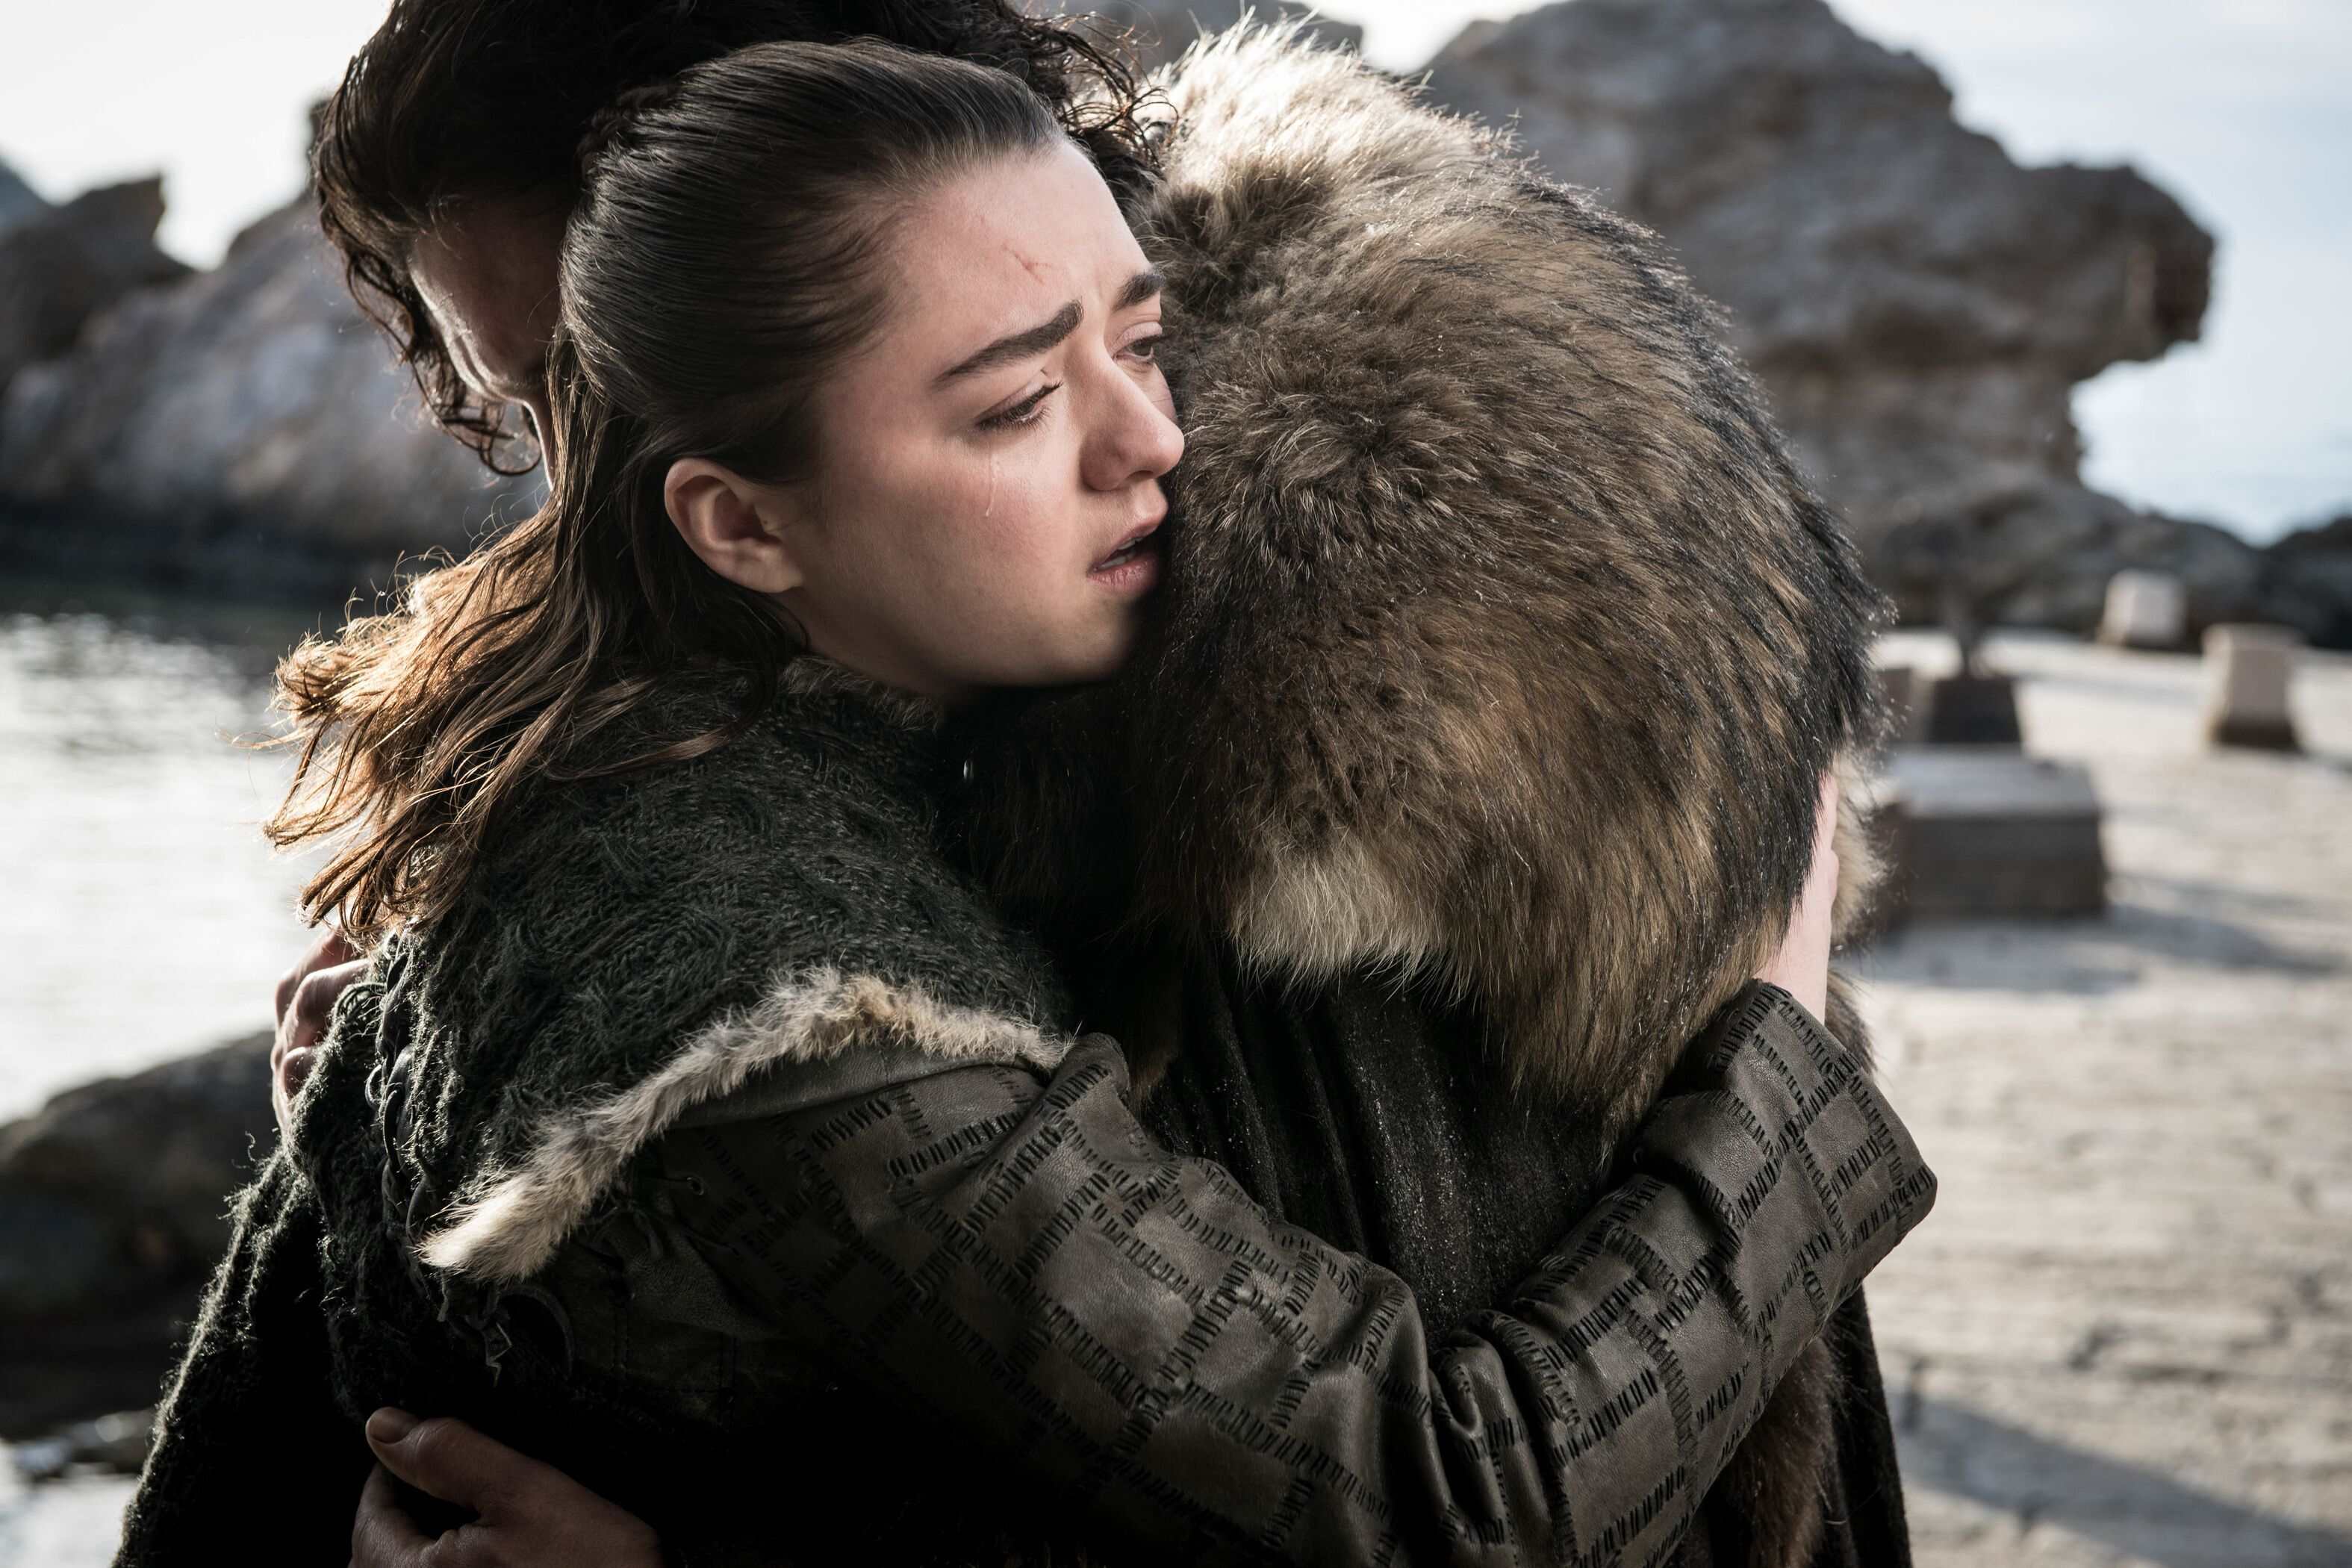 Will we see an Arya Stark spinoff of Game of Thrones?